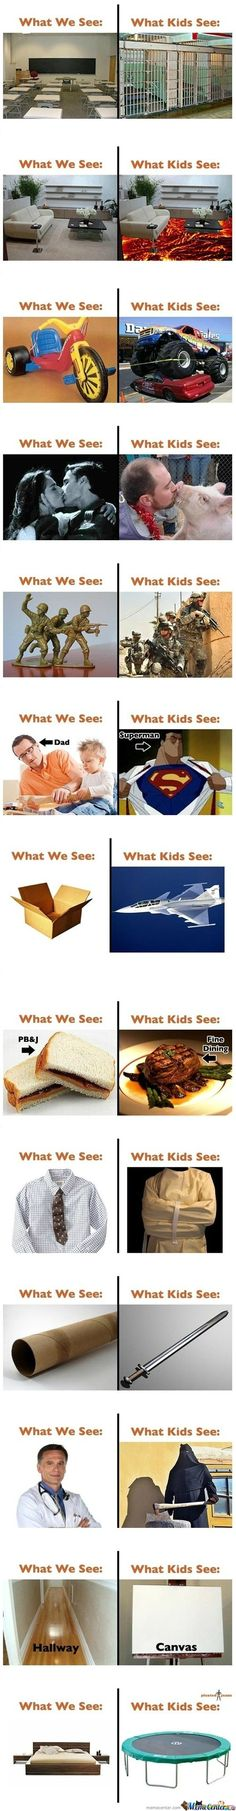 Kid Vision....so true